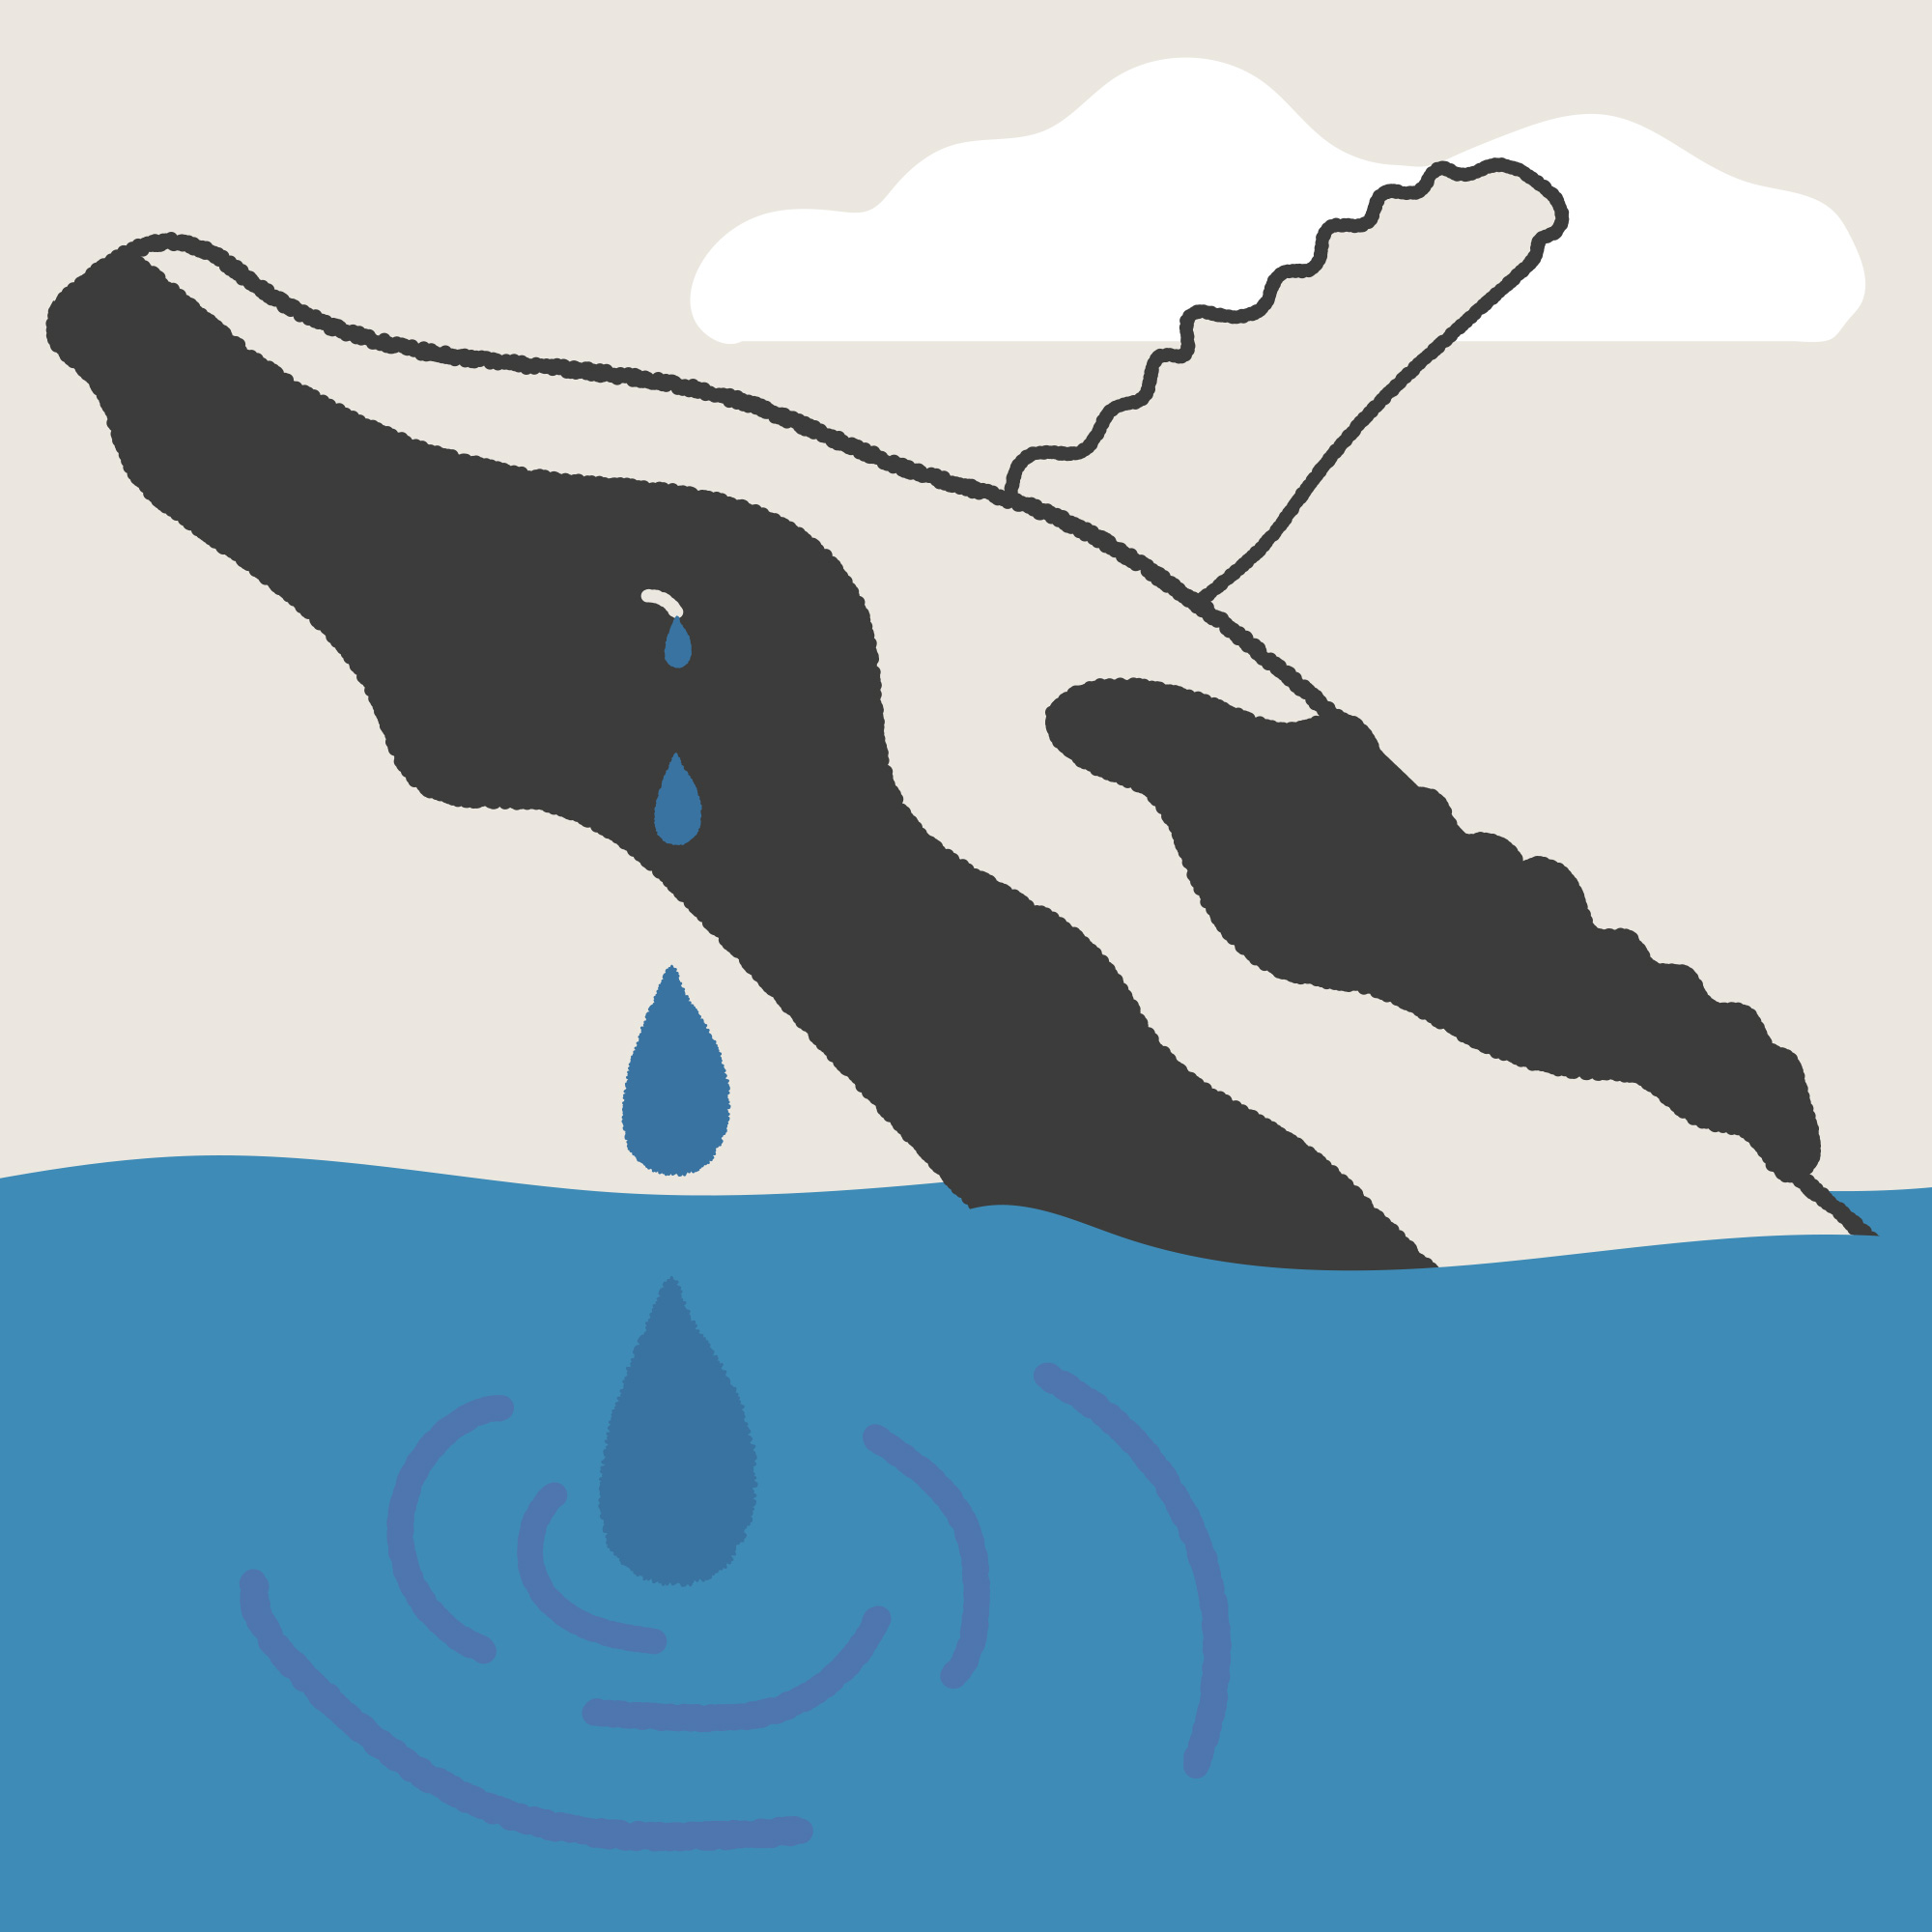 A line cartoon of a black and white whale breaching out of the blue water which fills nearly half the square. There is a single cloud in hte sky and the whale, who is on its back, is crying increasingly large tears down into the water.